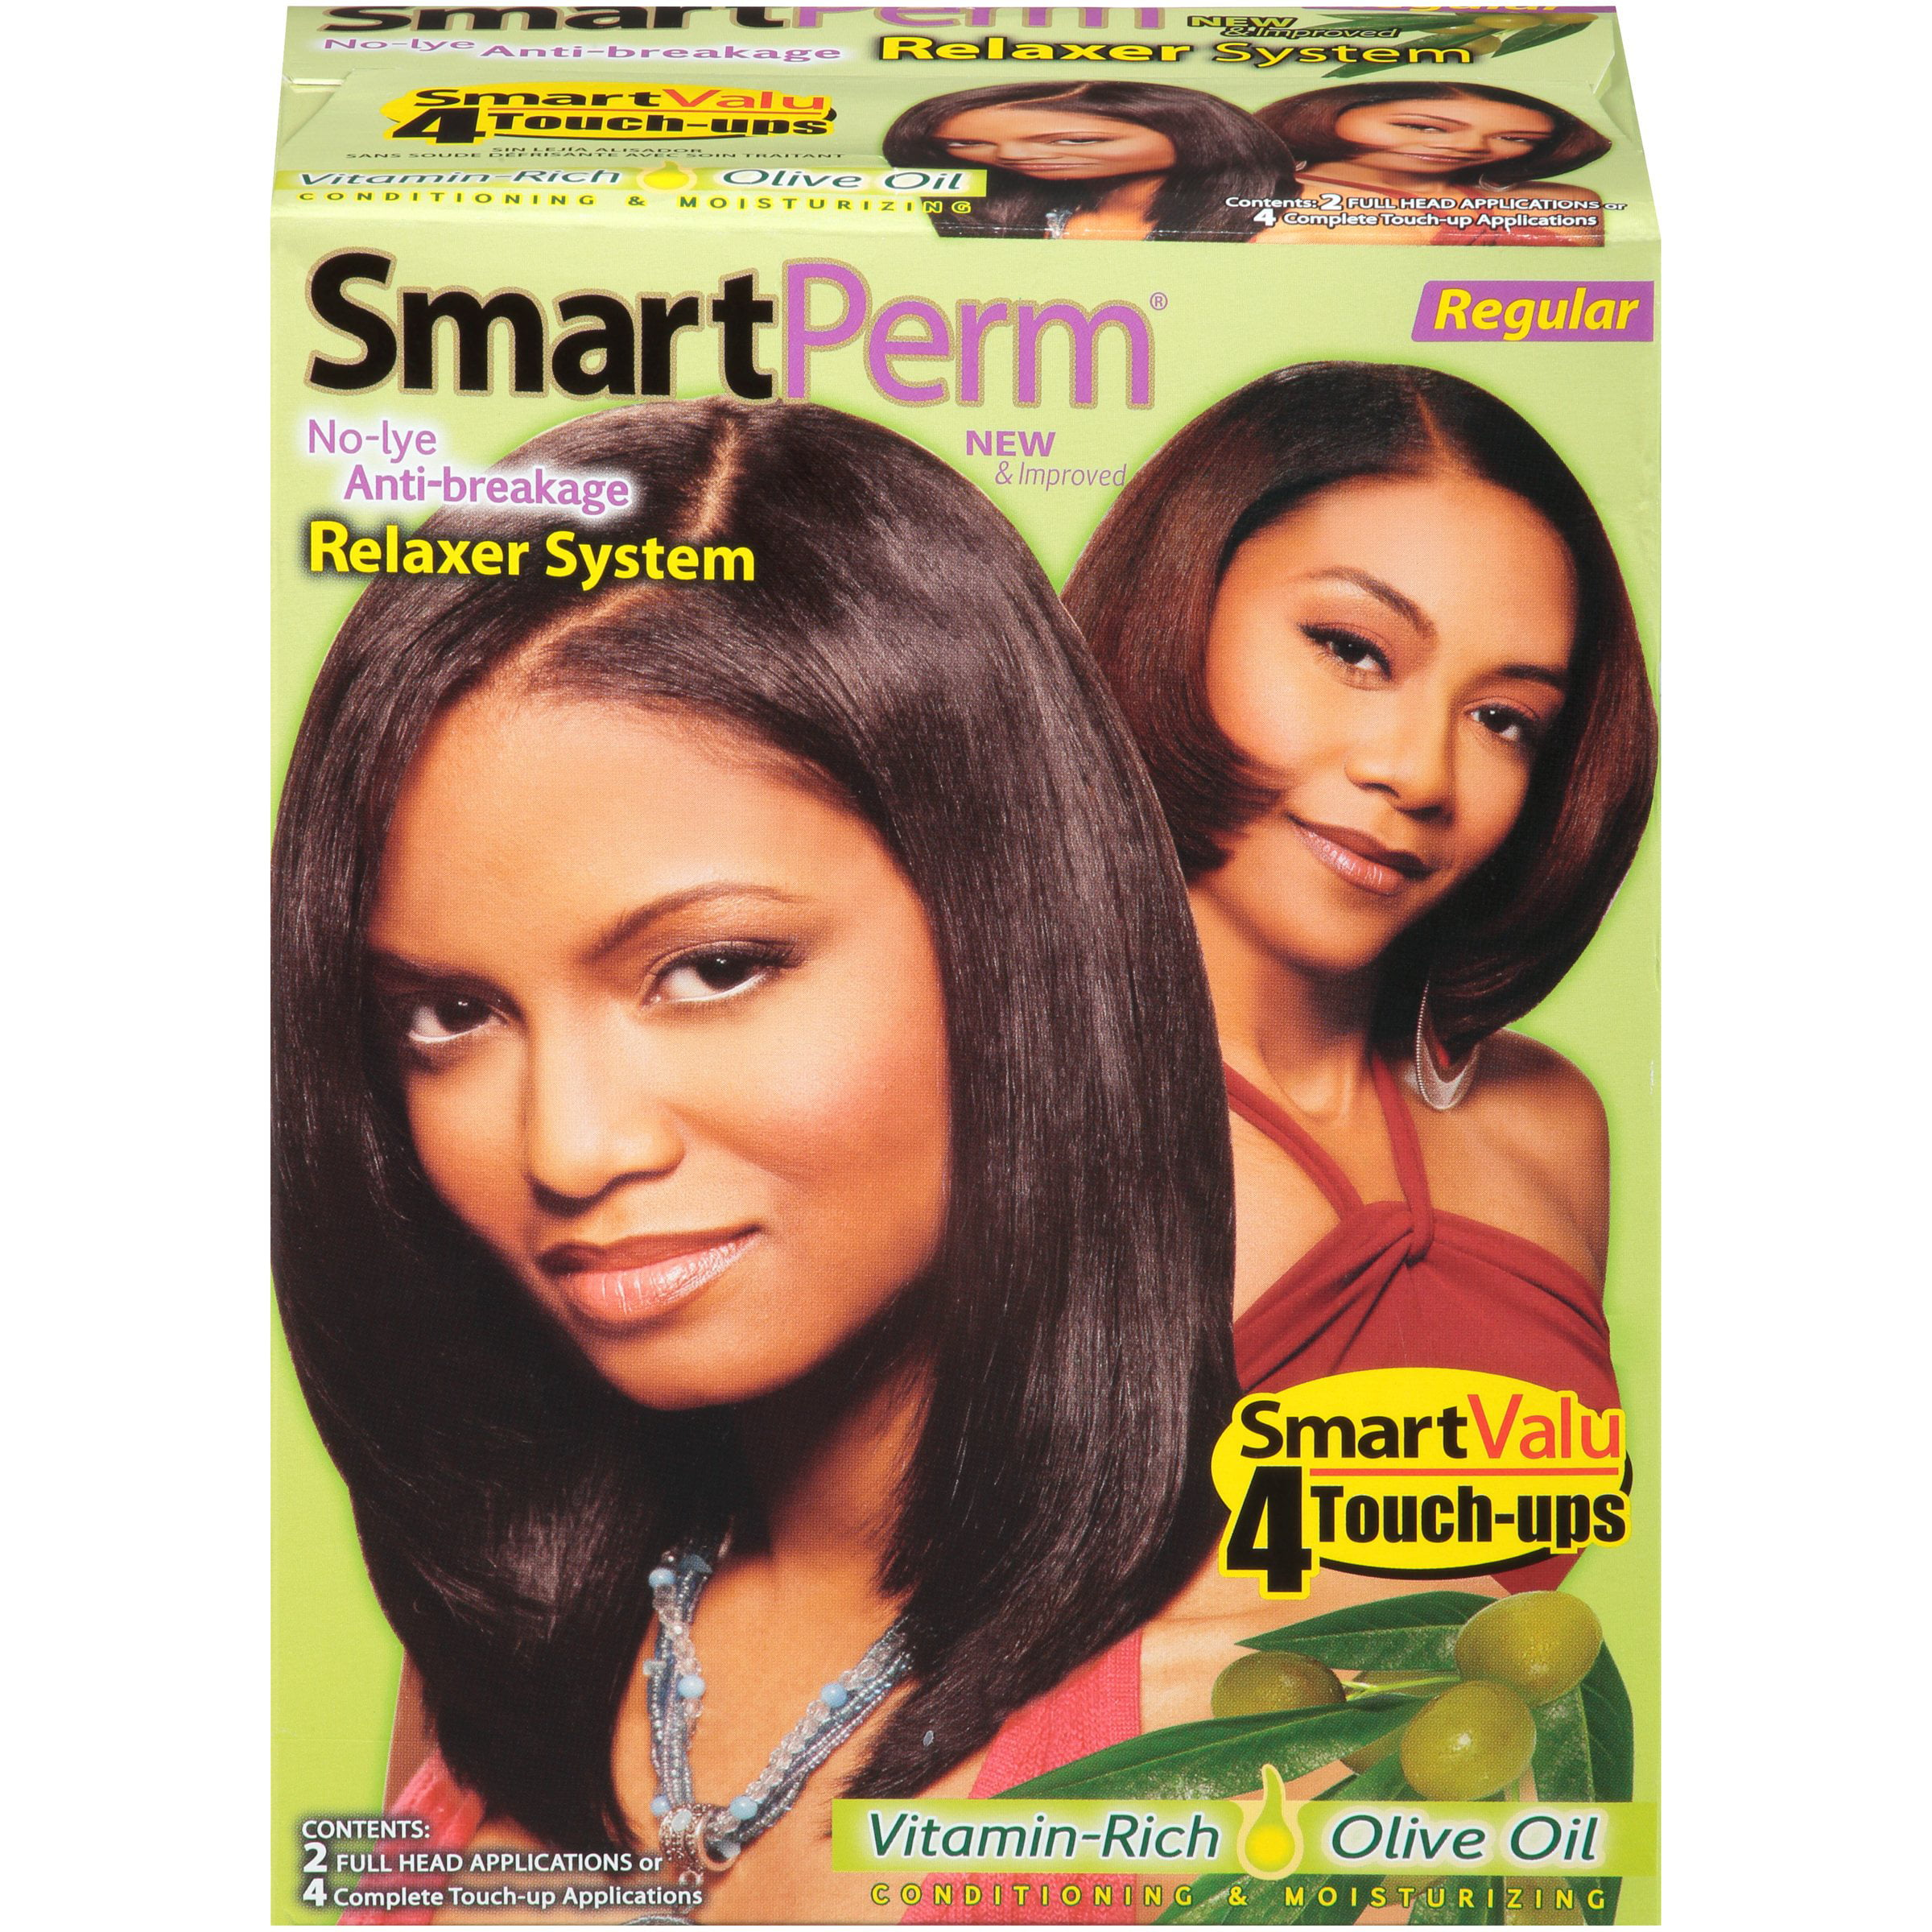 Smart Perm Regular Hair Relaxer System Walmart